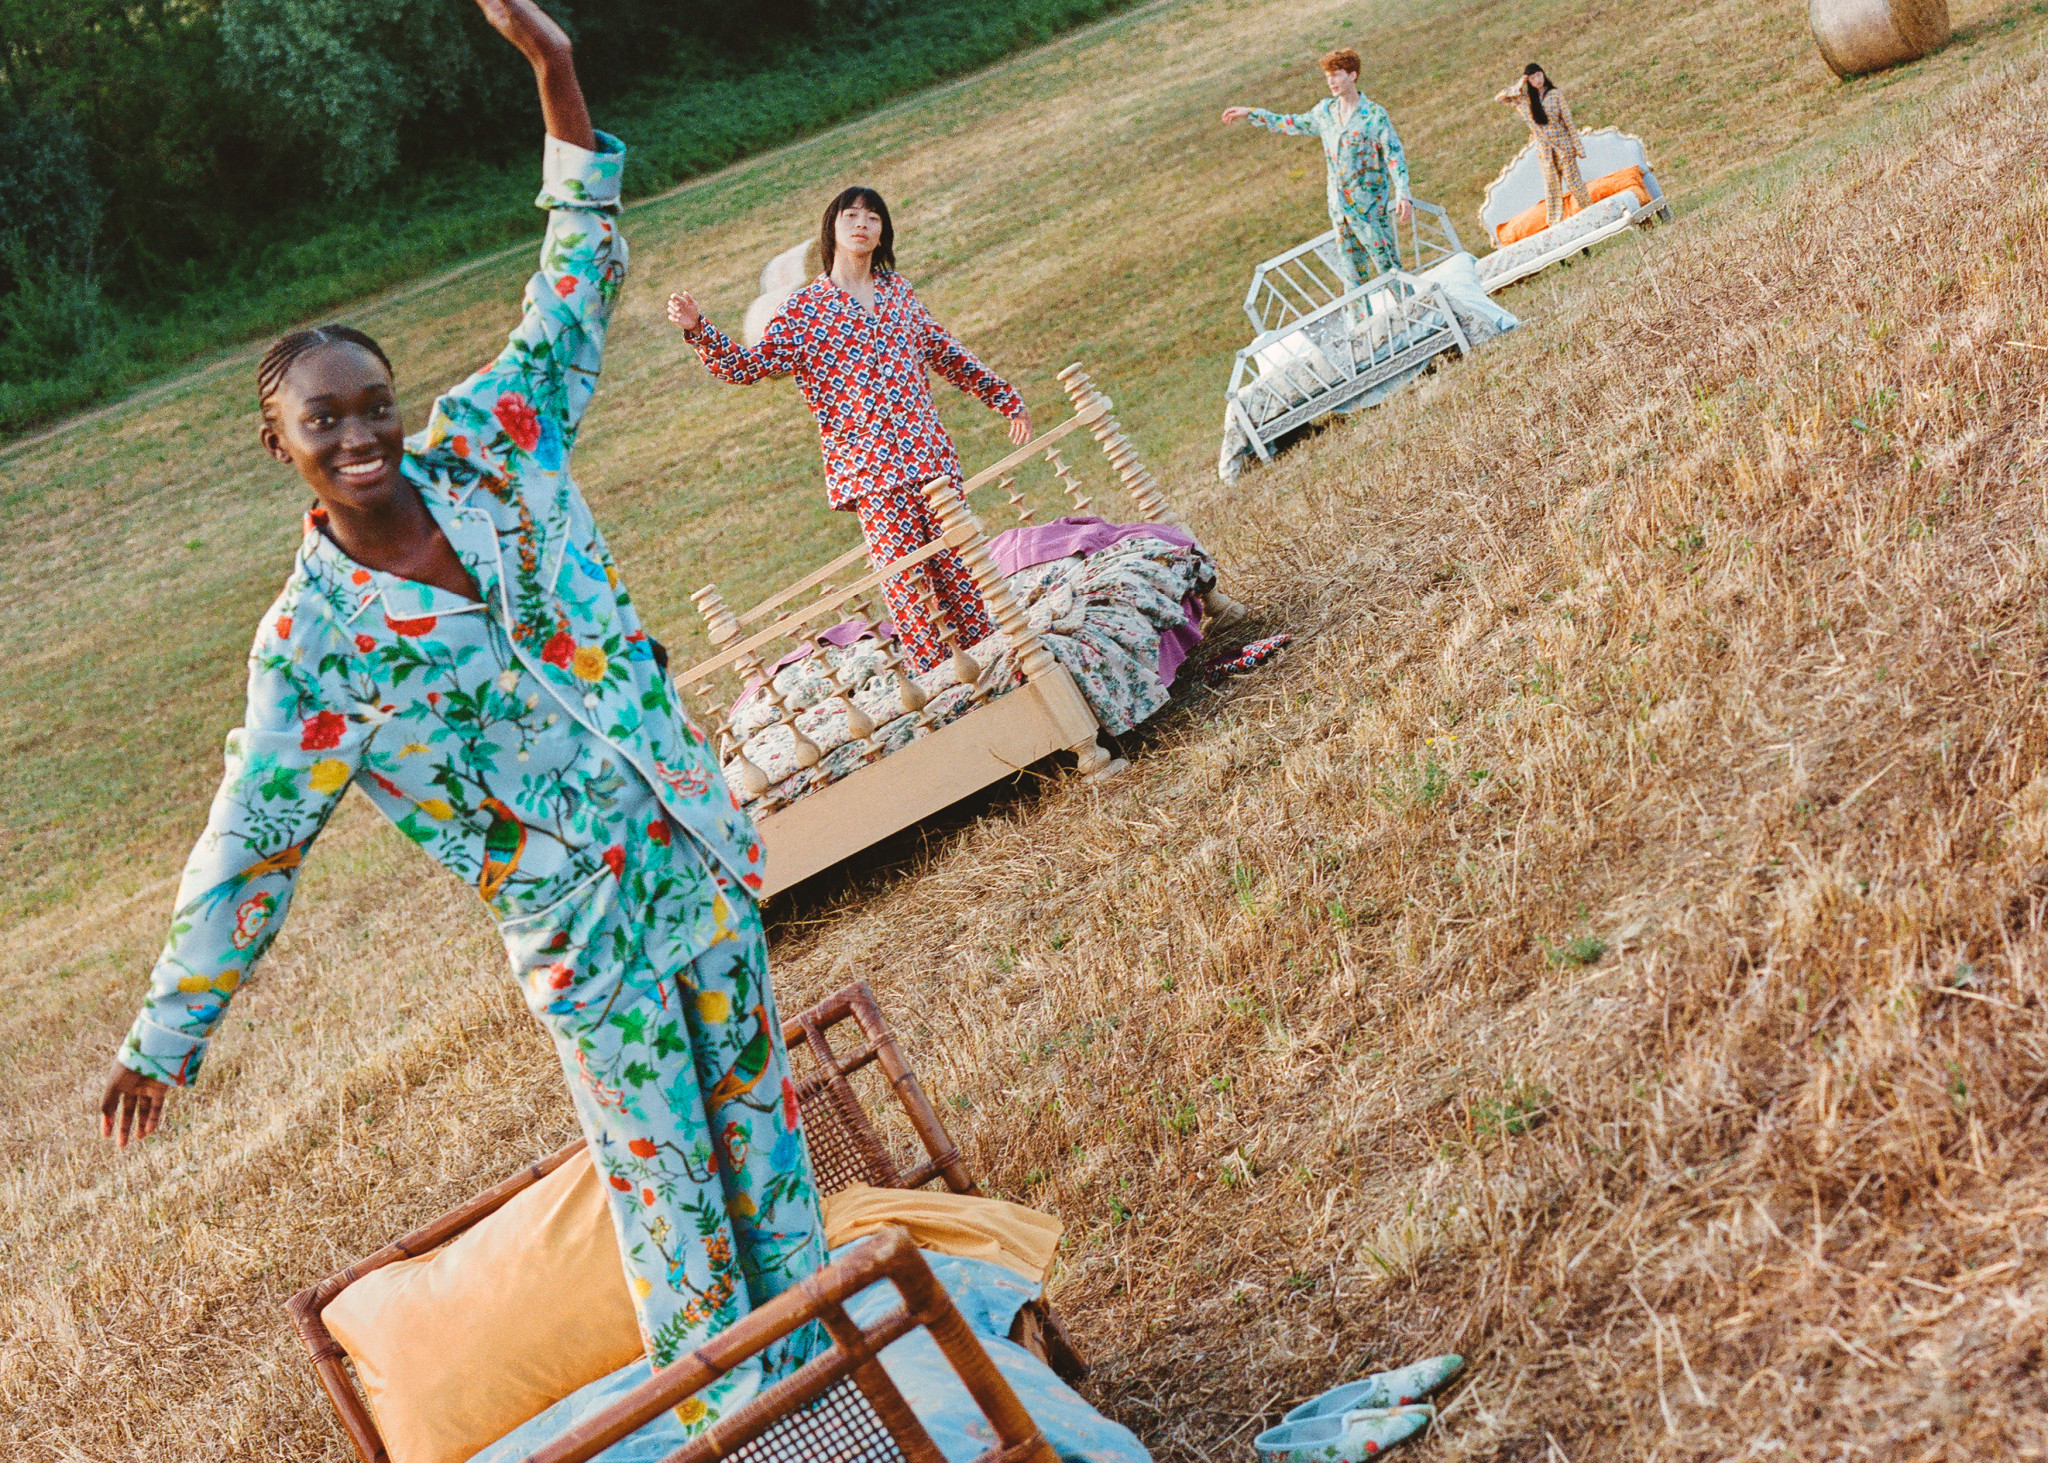 Gucci Lifestyle Campaign Images